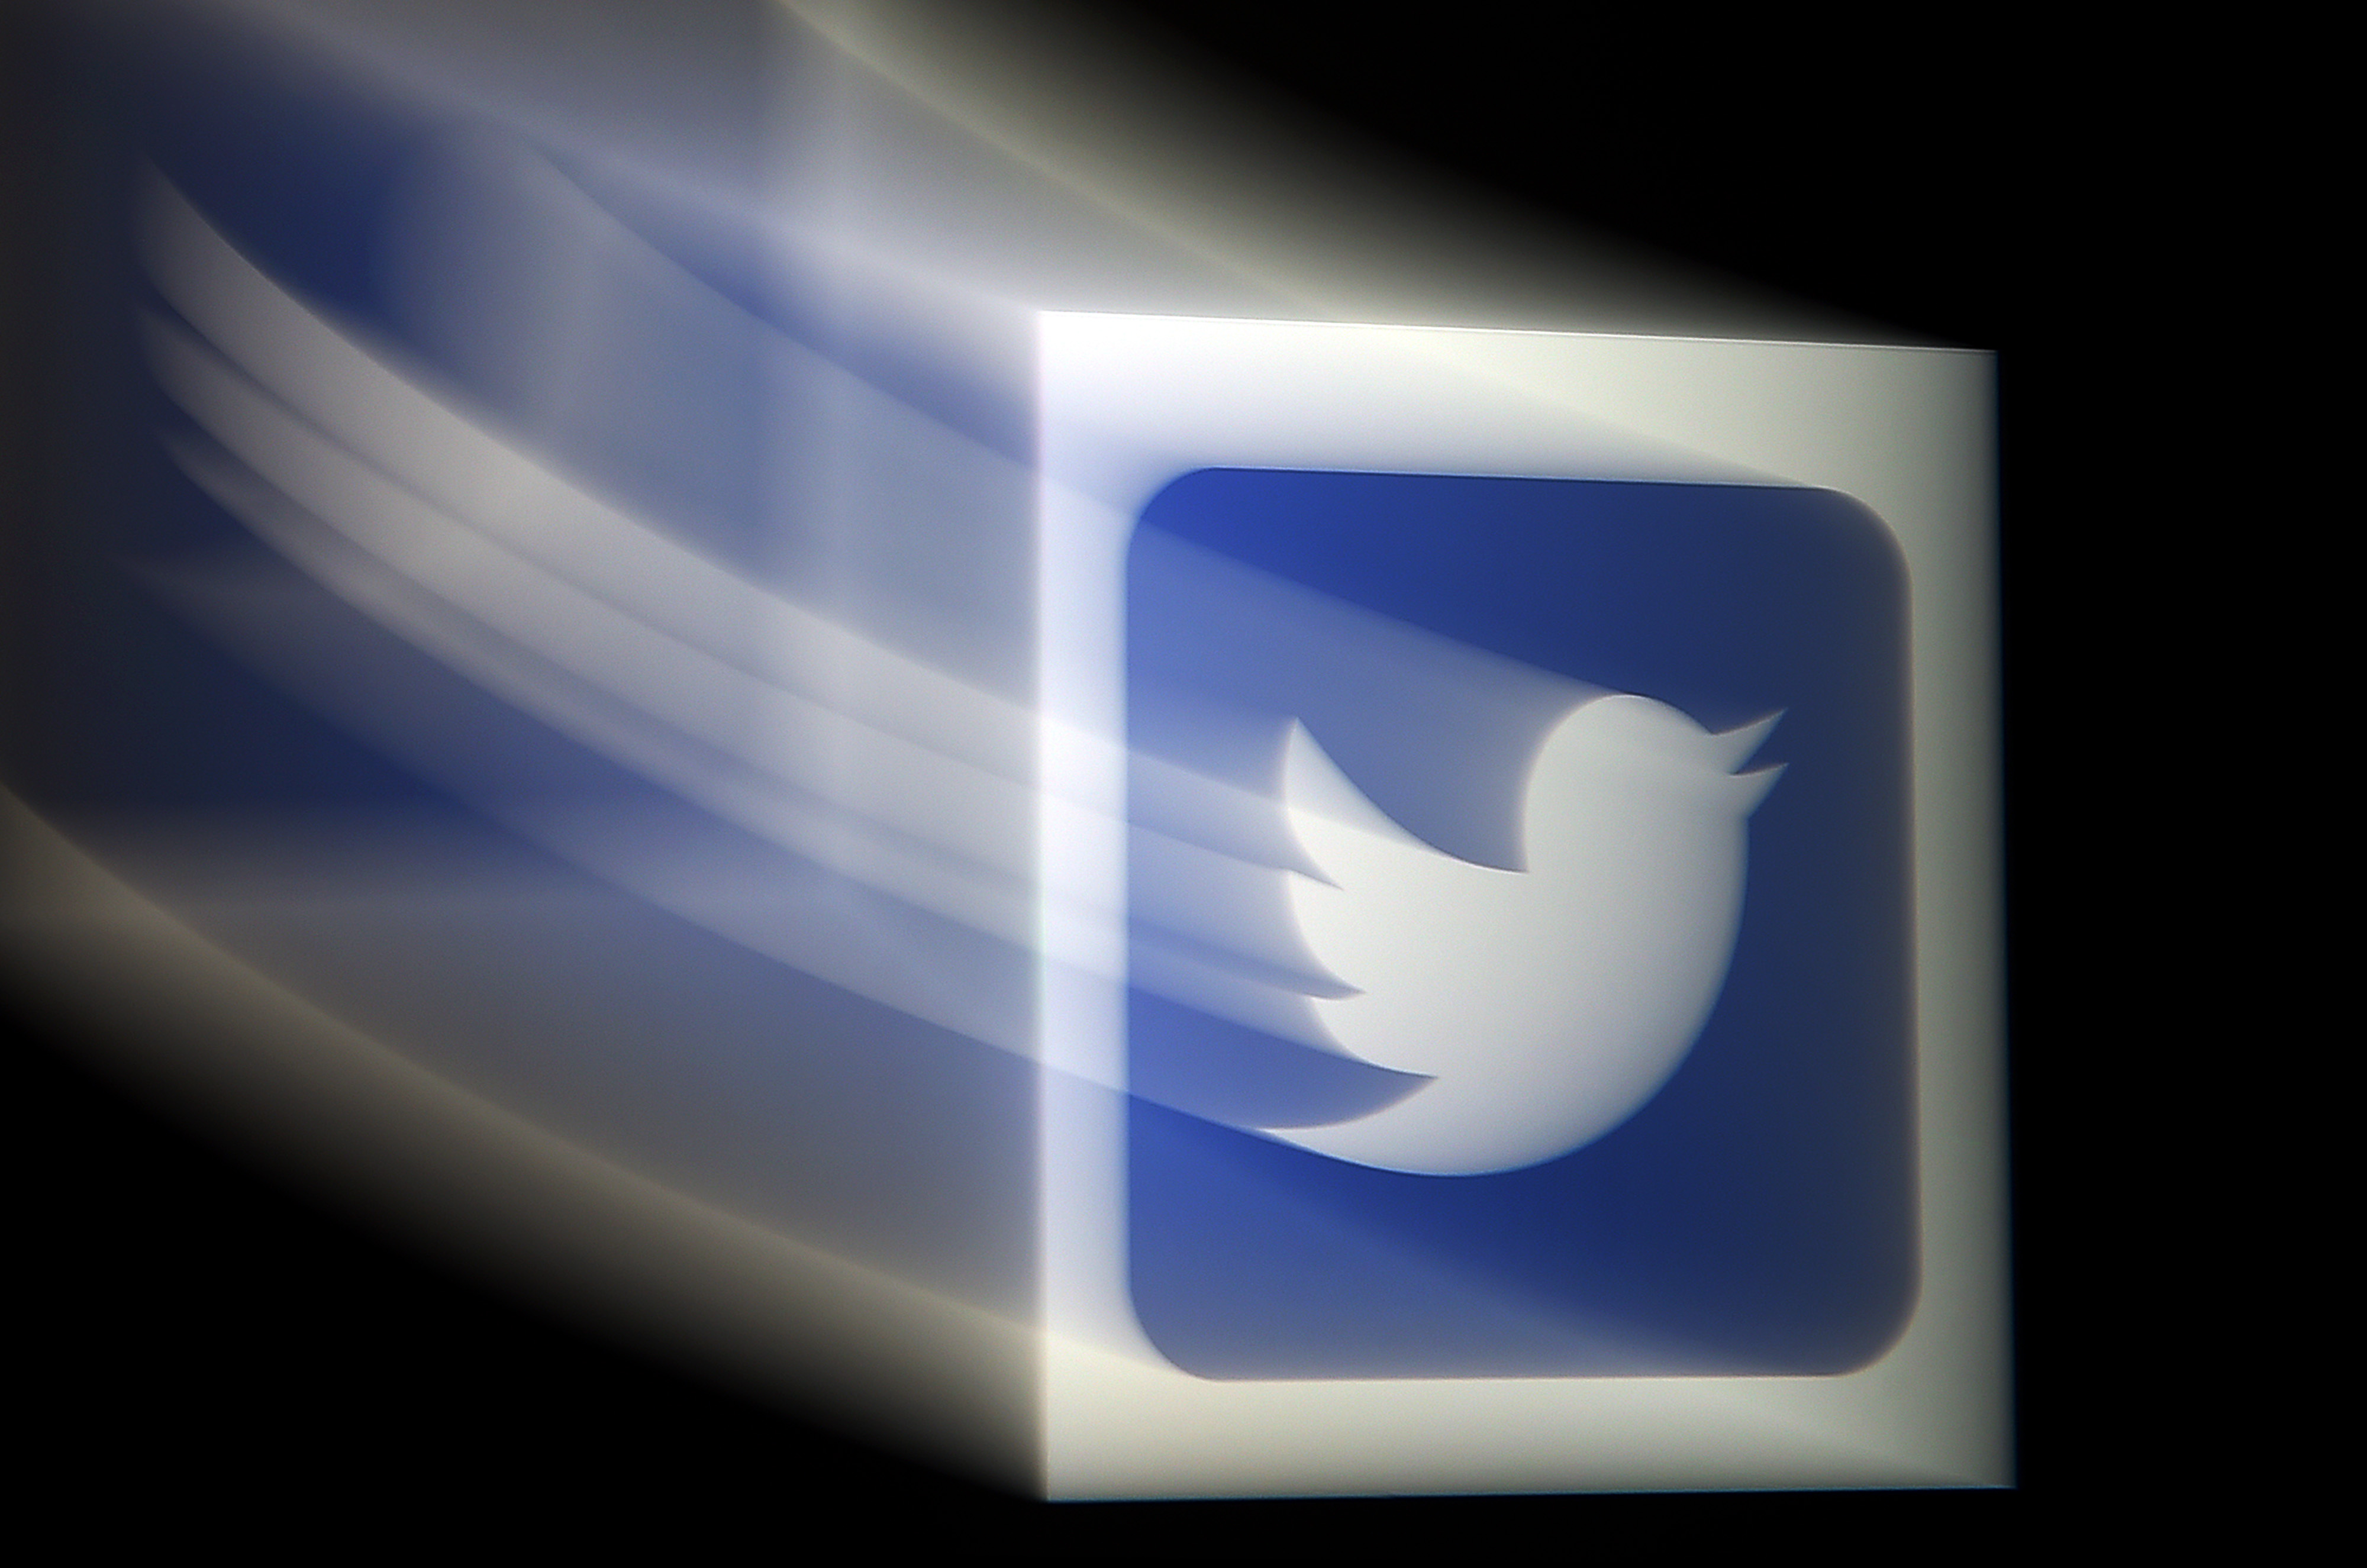 Twitter is working on a fix for its automated image cropping